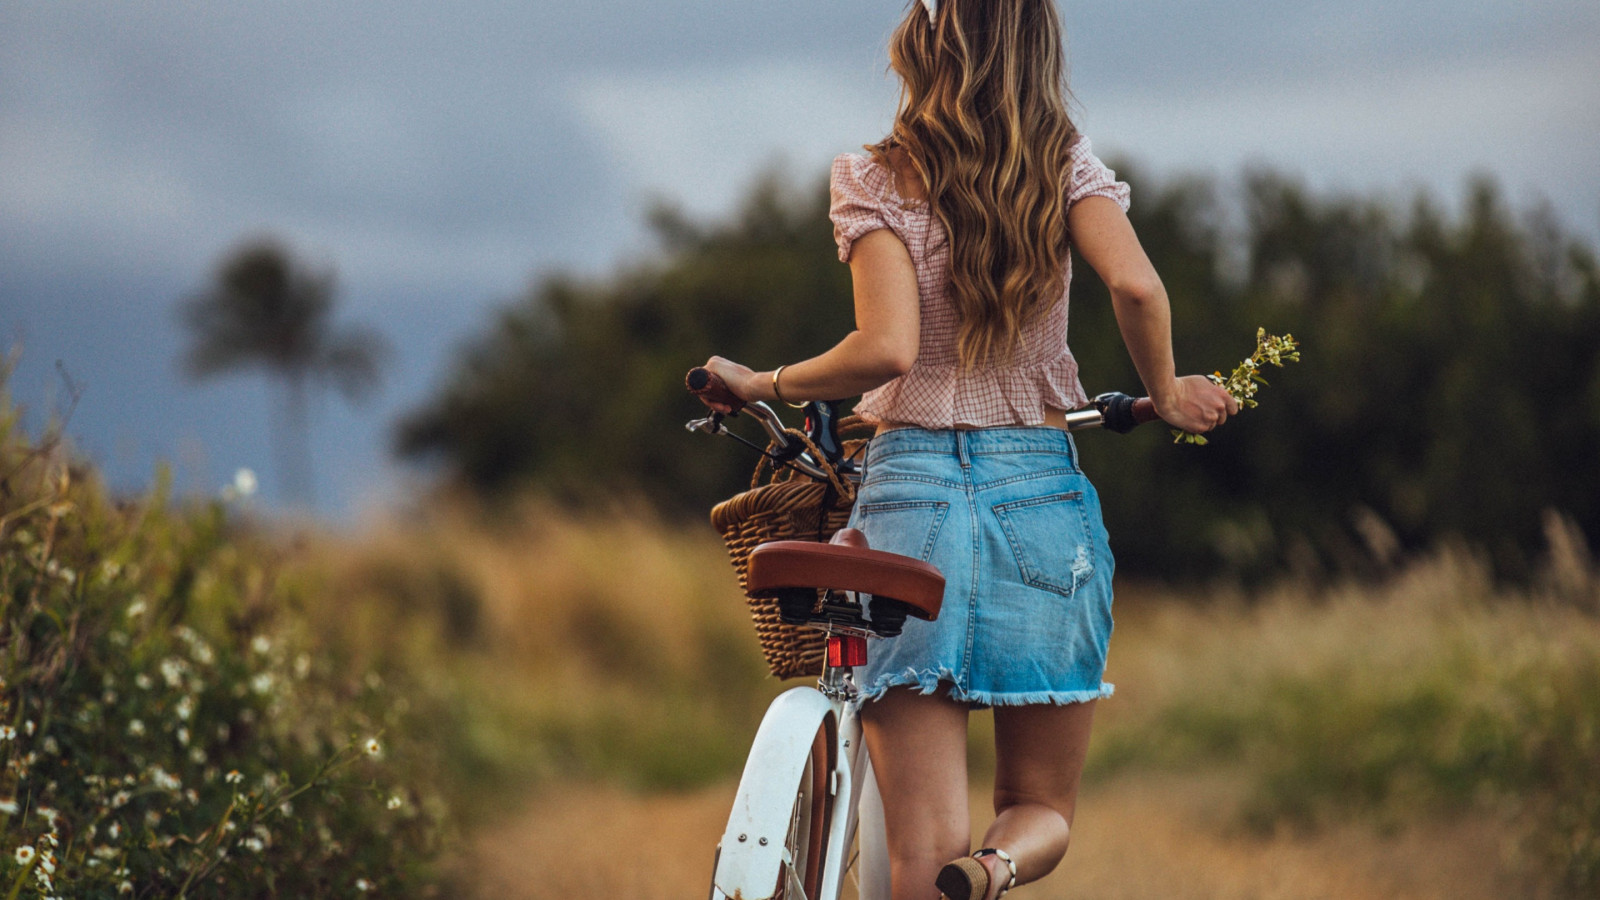 Lady with her retro bike wallpaper 1600x900